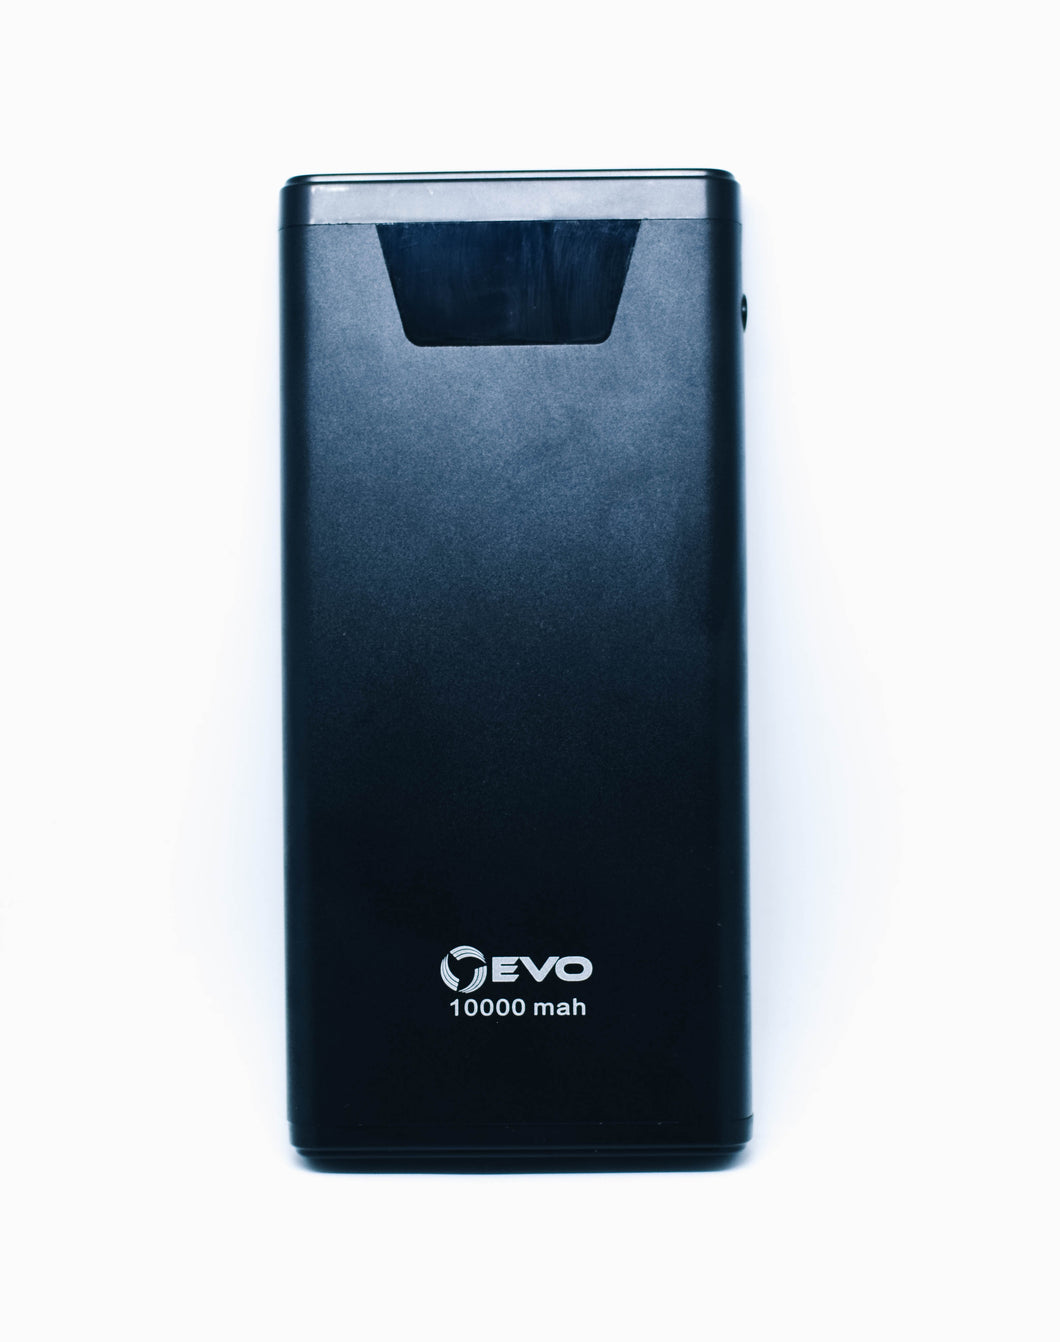 Power Bank Modelo Evo M100 De 10.000mah